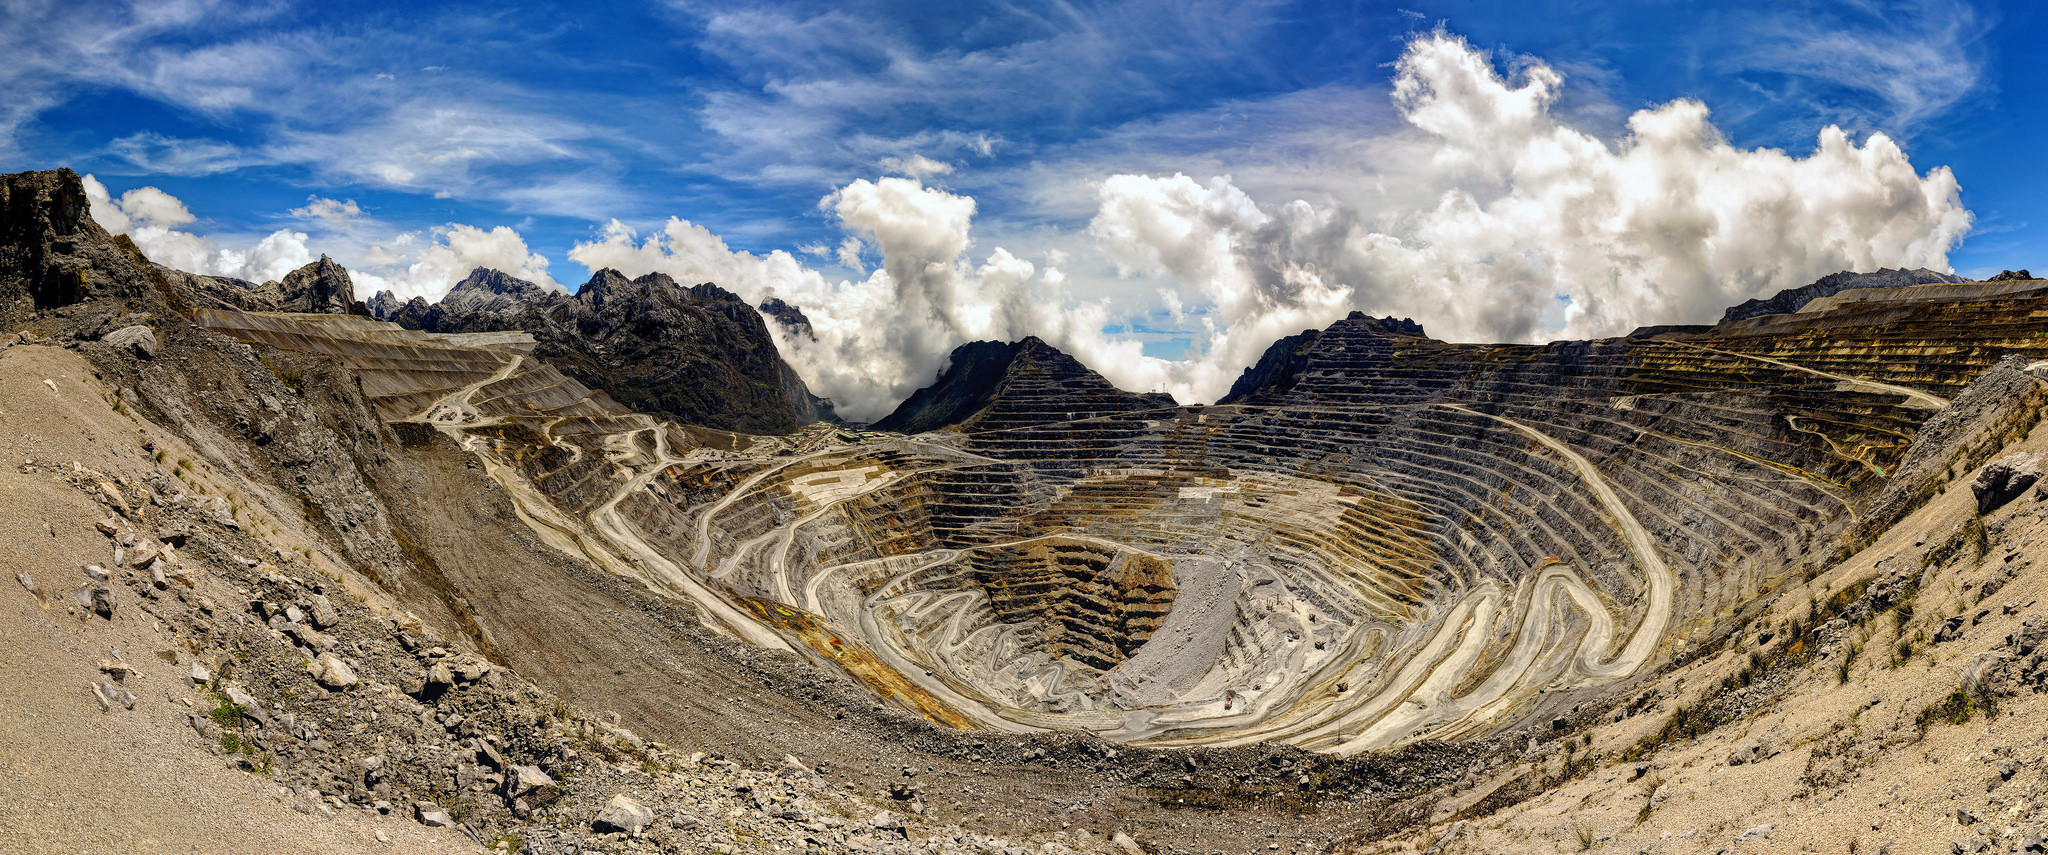 Grasberg mine in Indonesia (Photo credit: Paul Q. Warren)